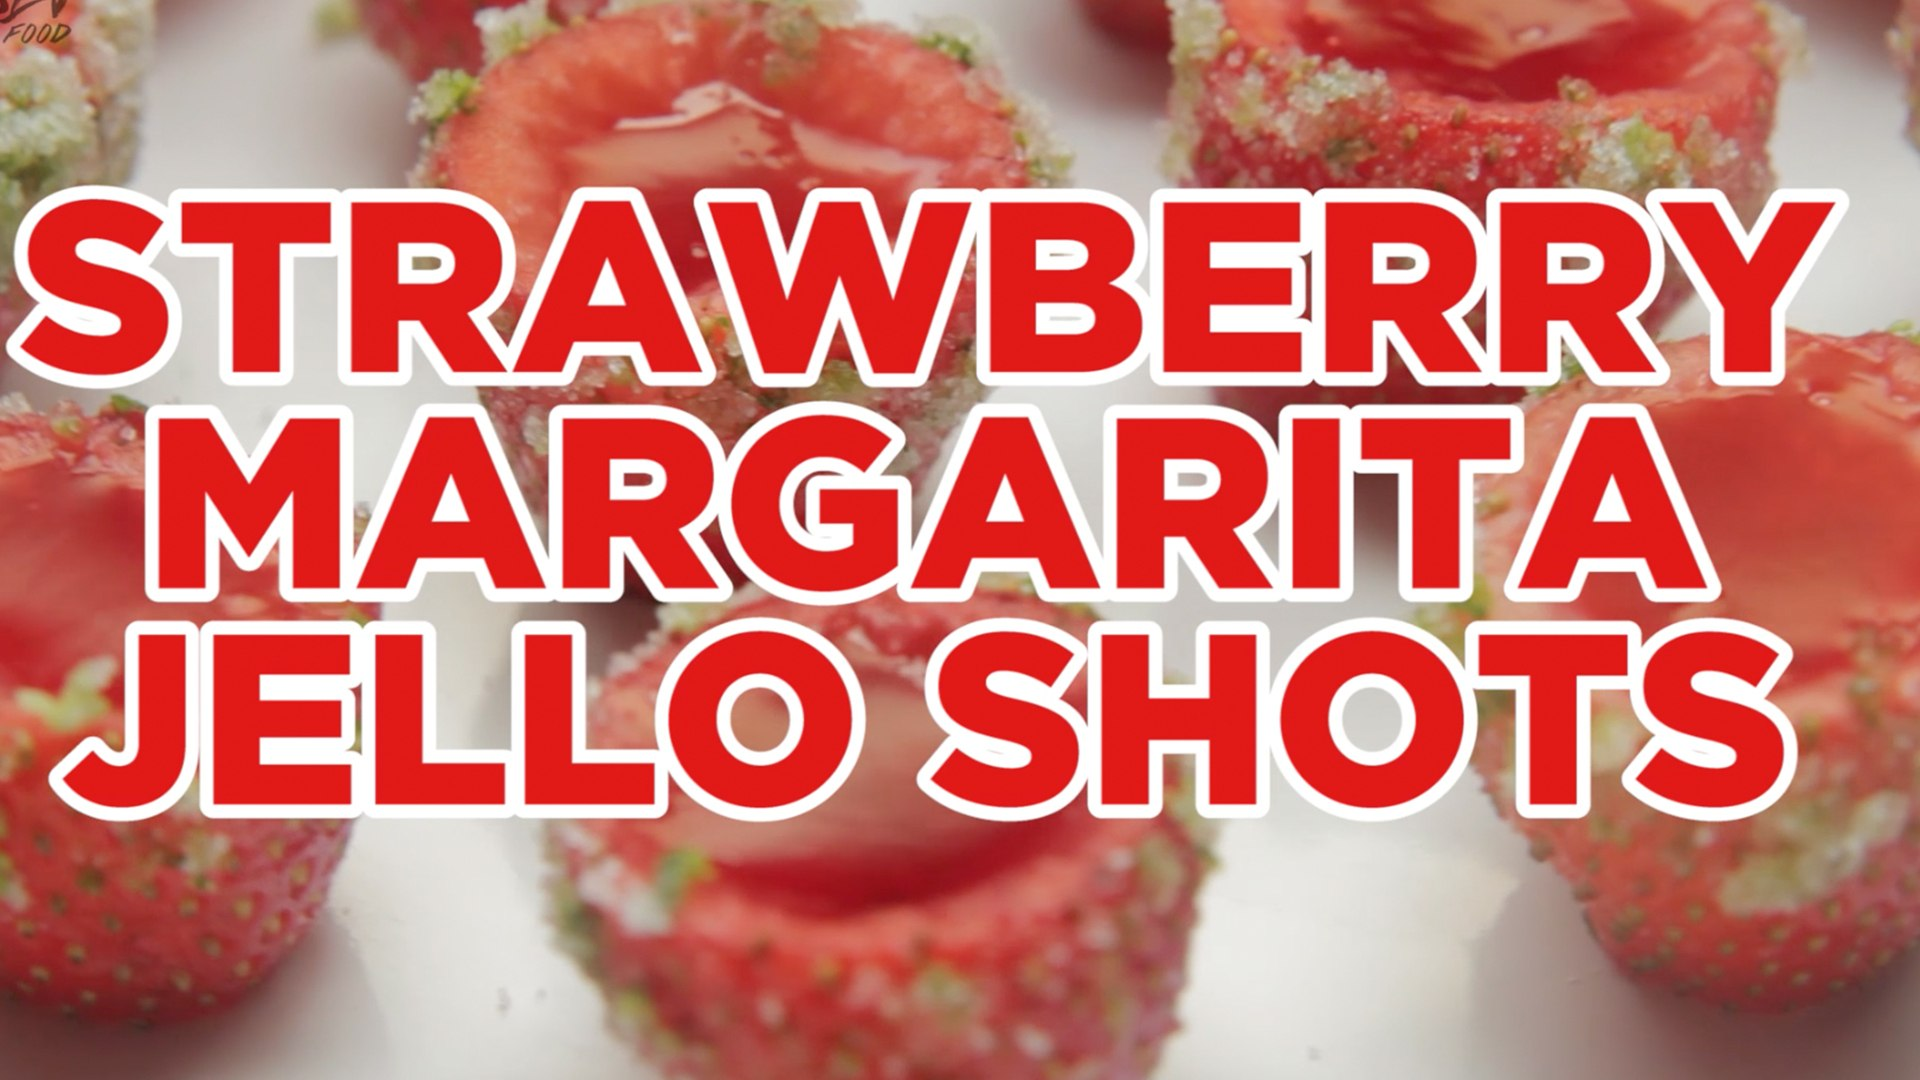 How To Make Strawberry Margarita Jell O Shots Full Recipe Video Dailymotion